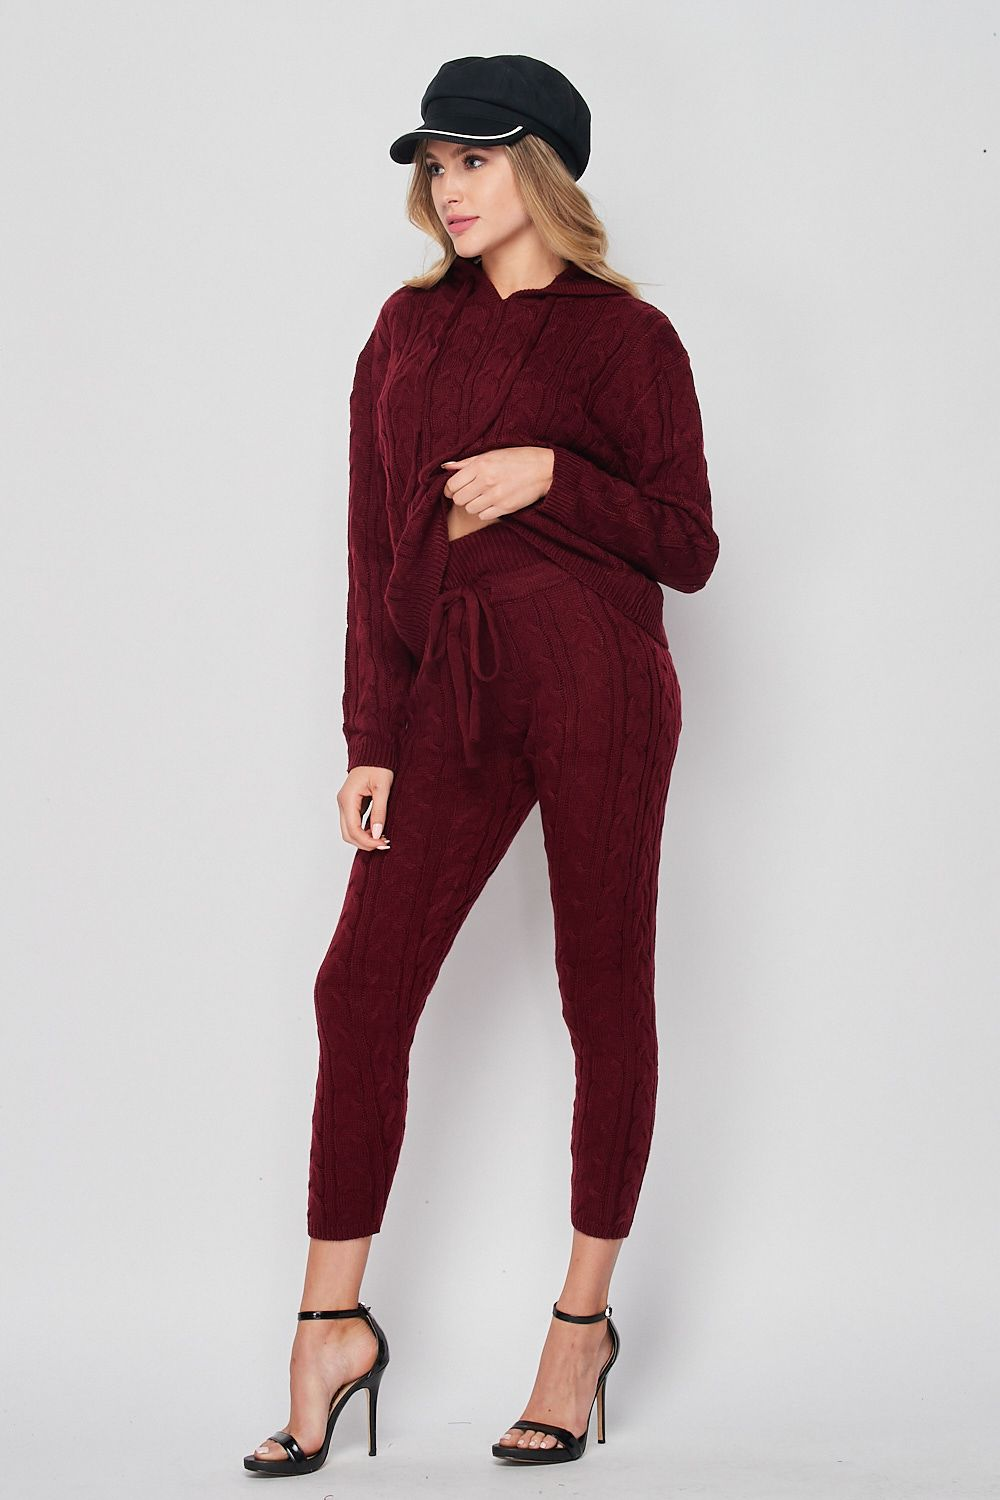 Blank Lewks | Irene Cable Knit Sweater And Jogger Set | Burgundy